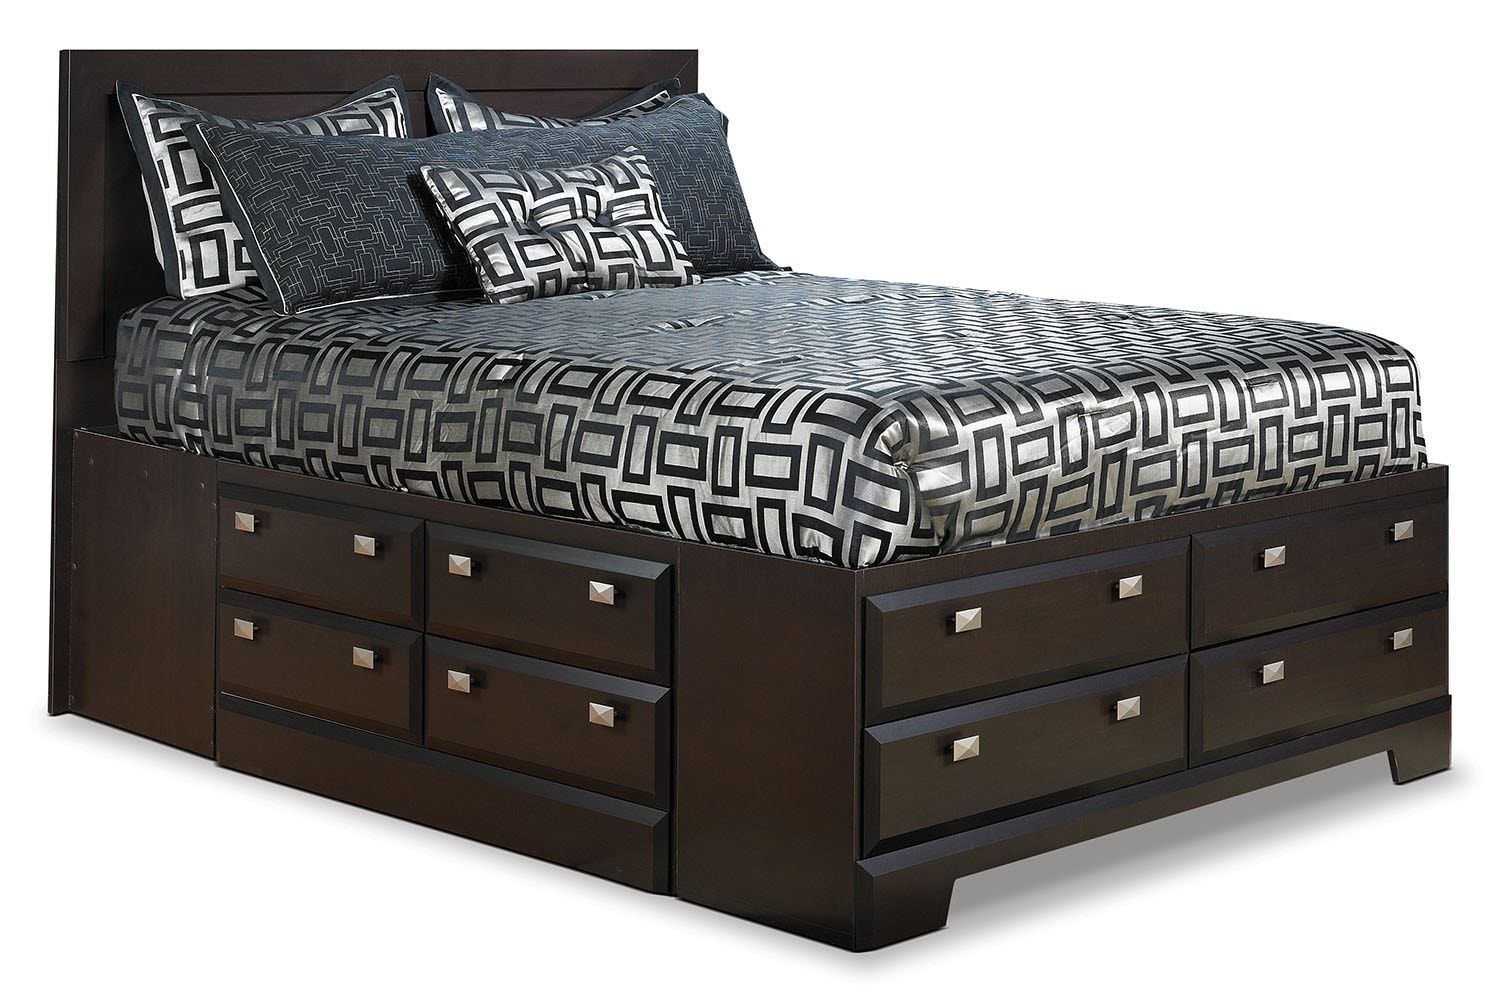 Bedroom Furniture - Yorkdale Full Bed with Storage